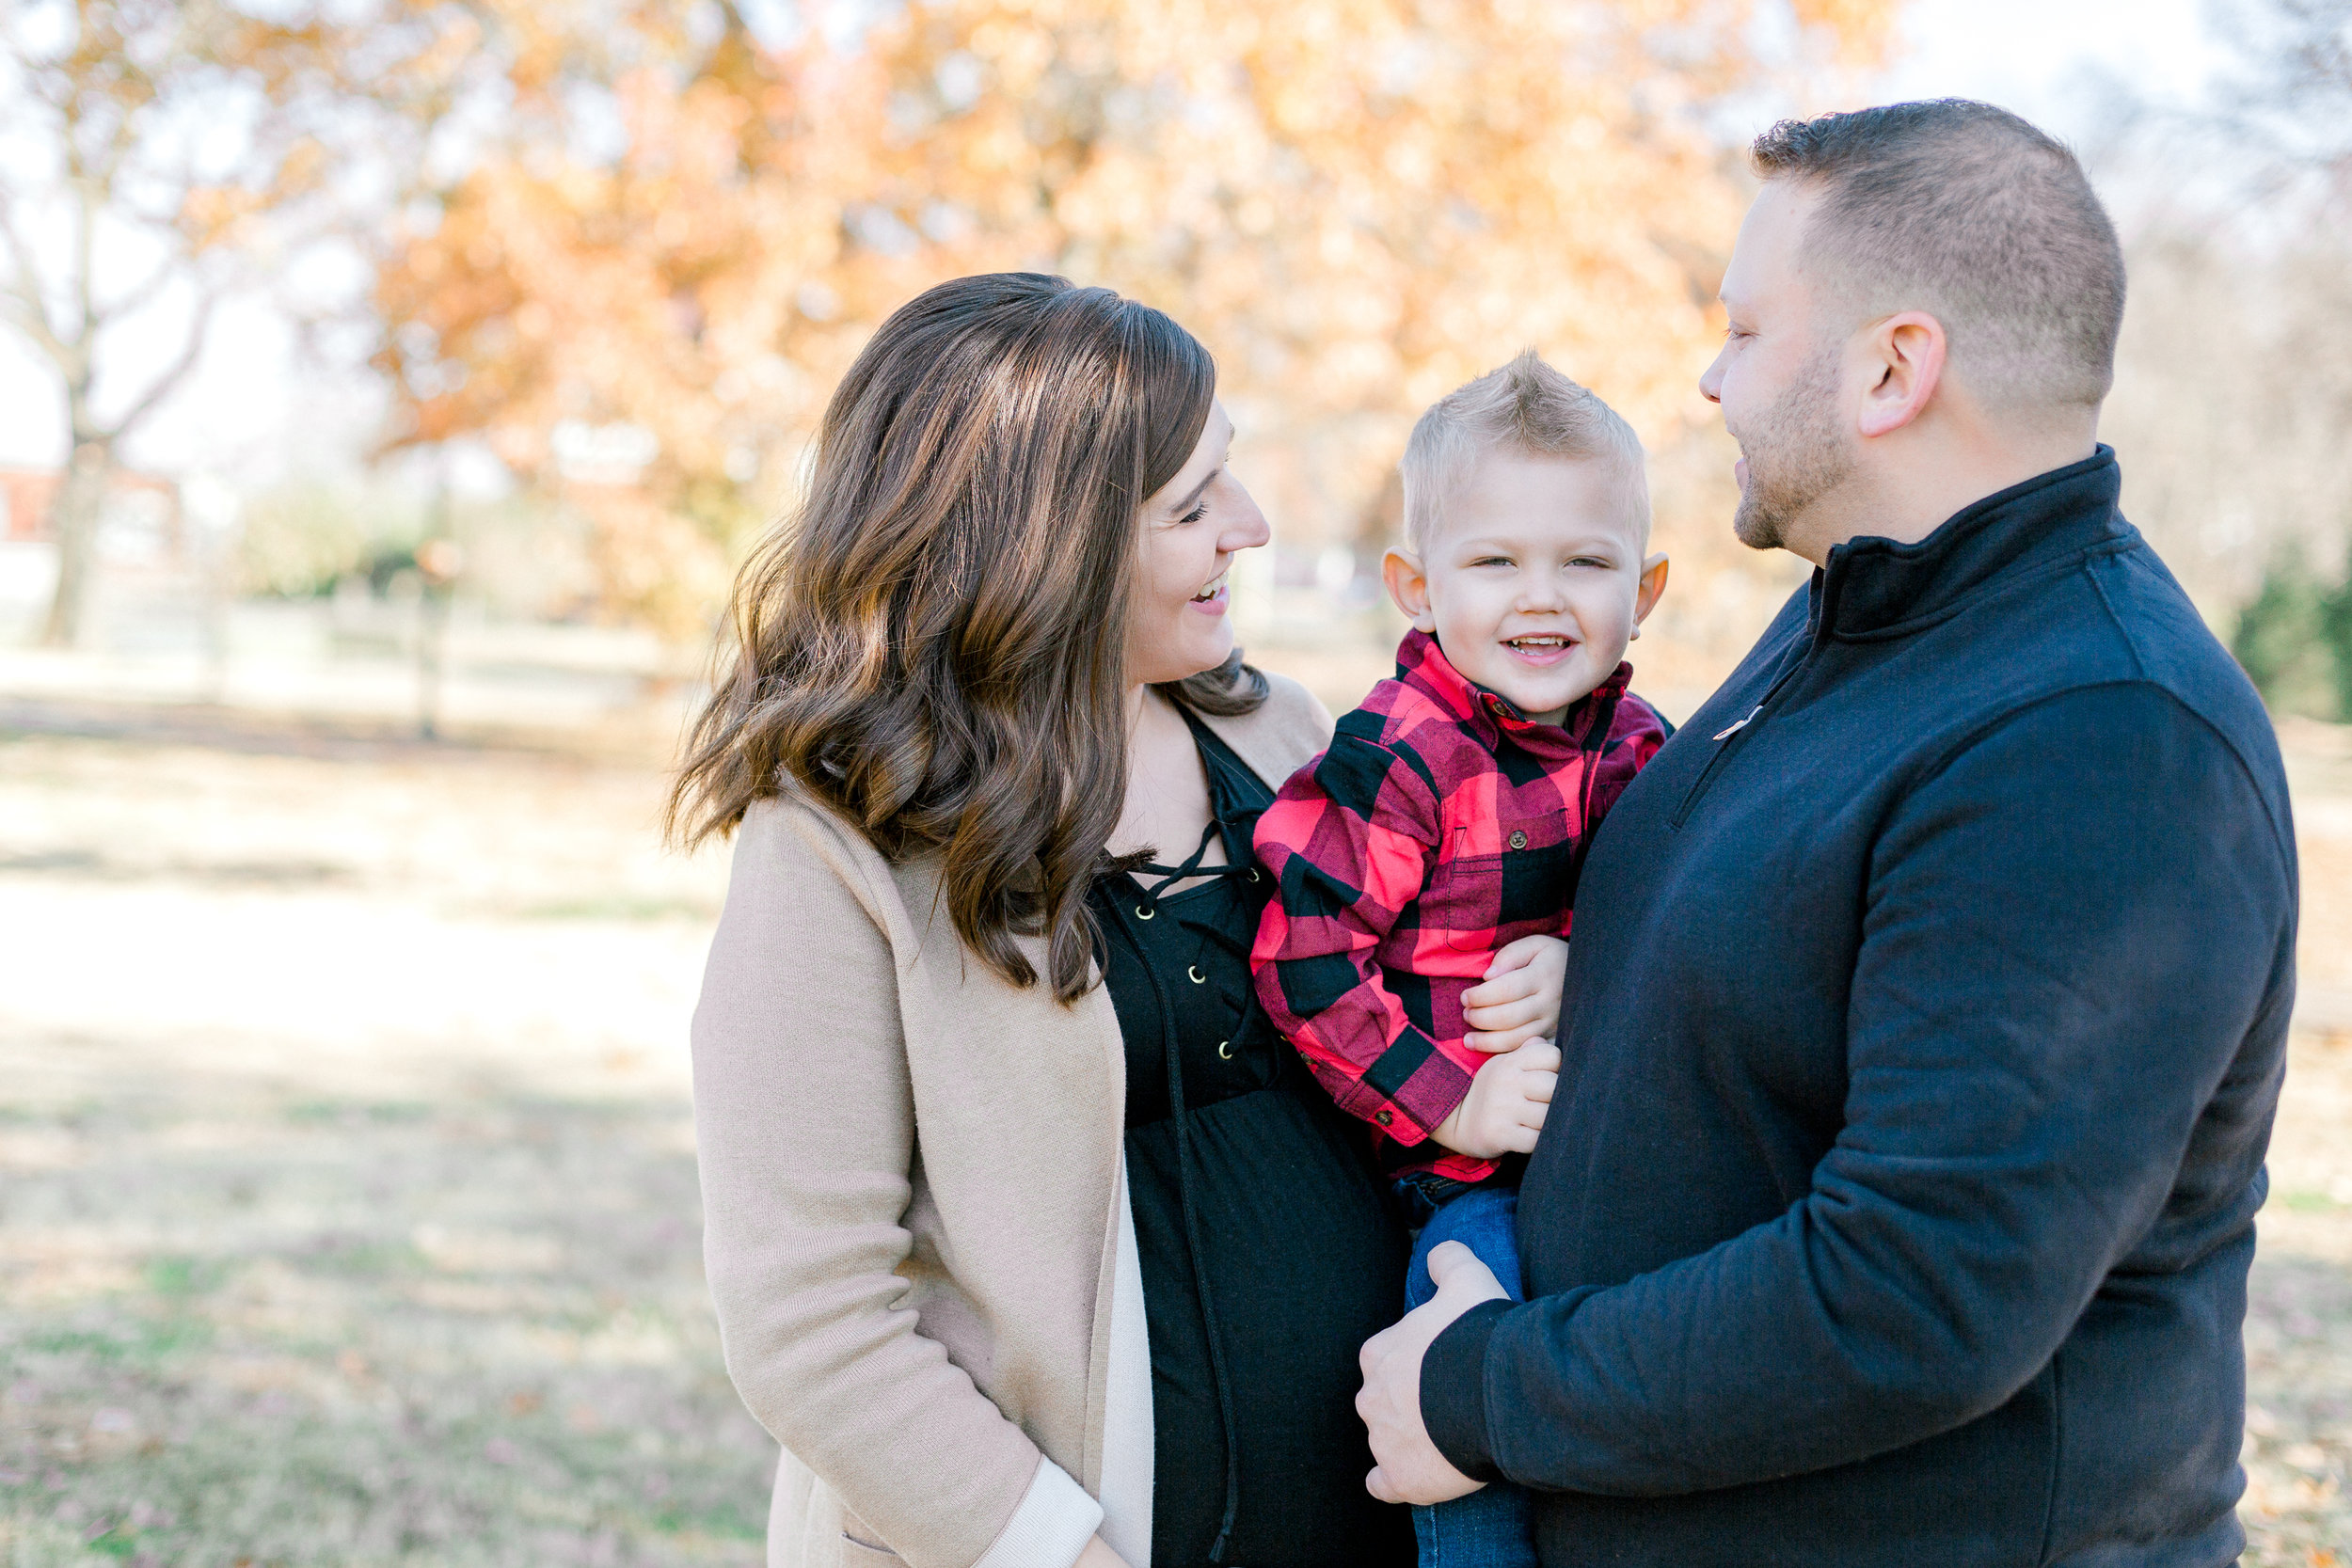 kentucky Fall Family maternity session engagement session wedding and lifestyle photographer Lytle Photo Co (26 of 87).jpg